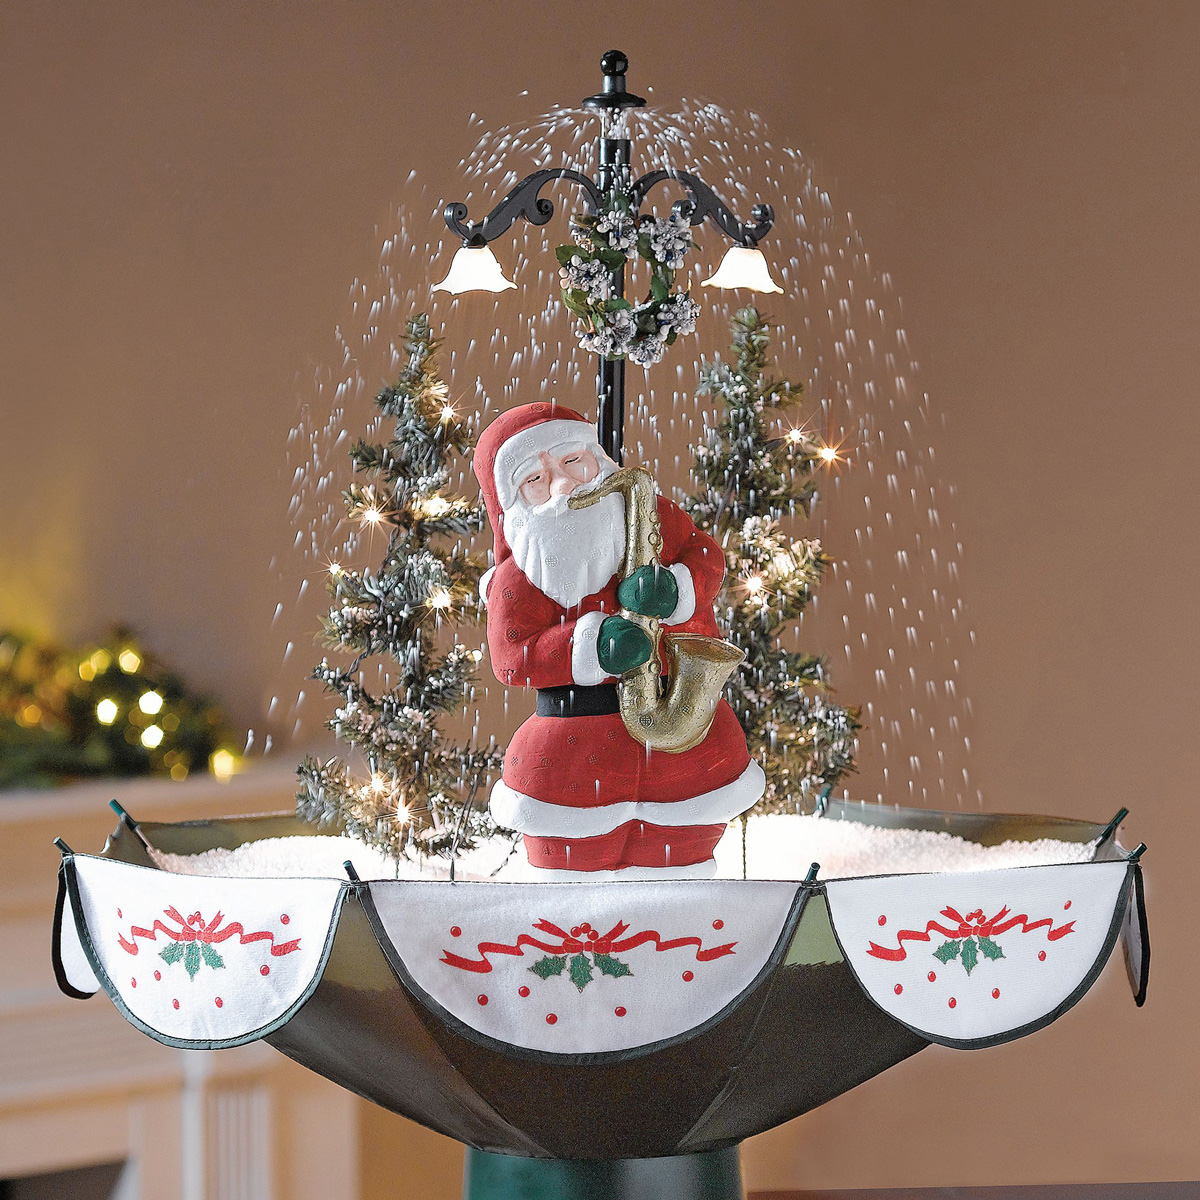 Tabletop christmas tree decorating ideas - Tabletop Snowing Christmas Tree